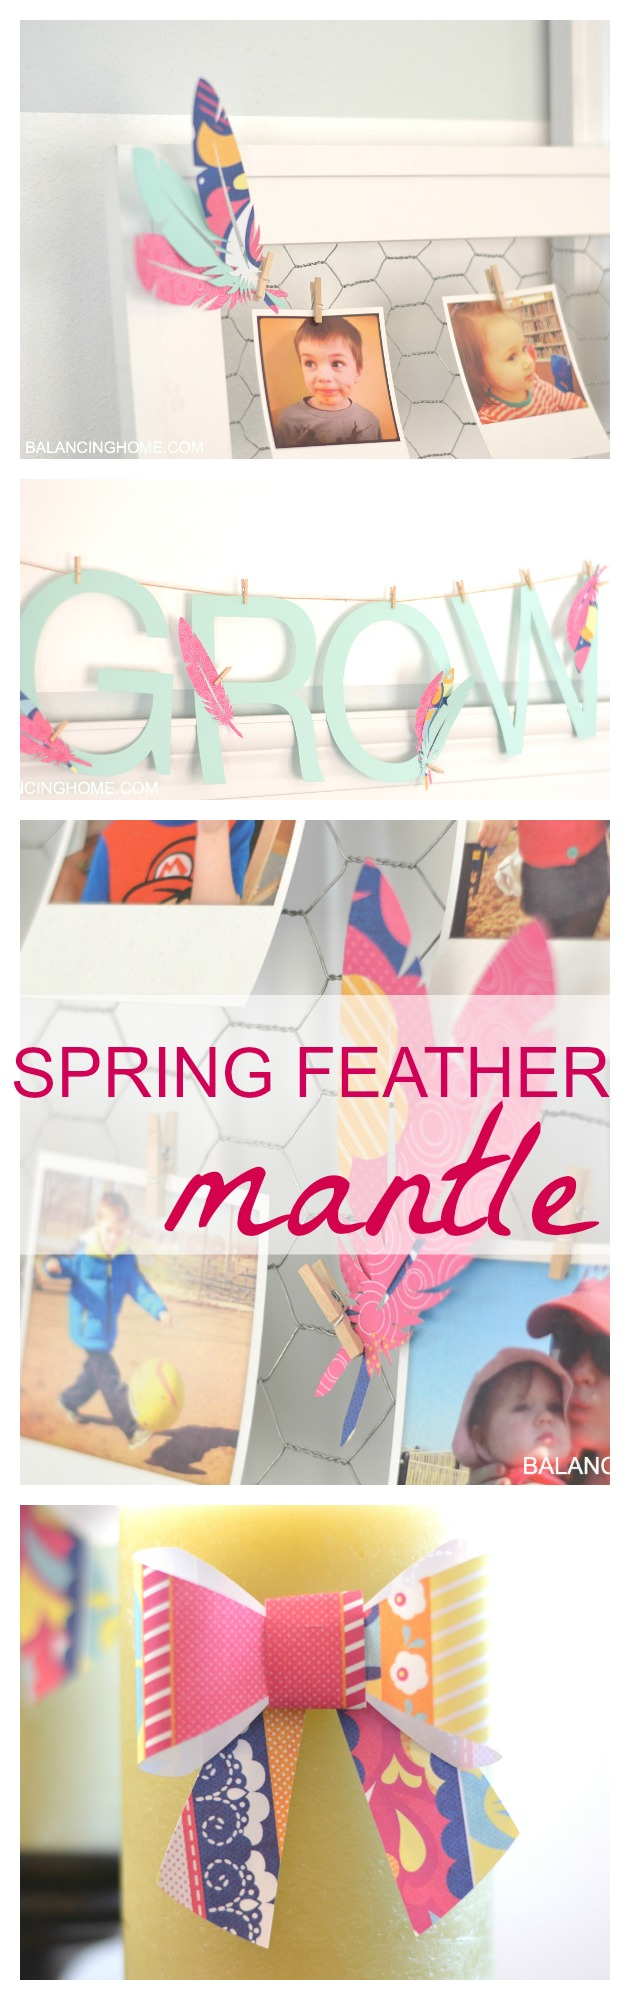 feather-mantle